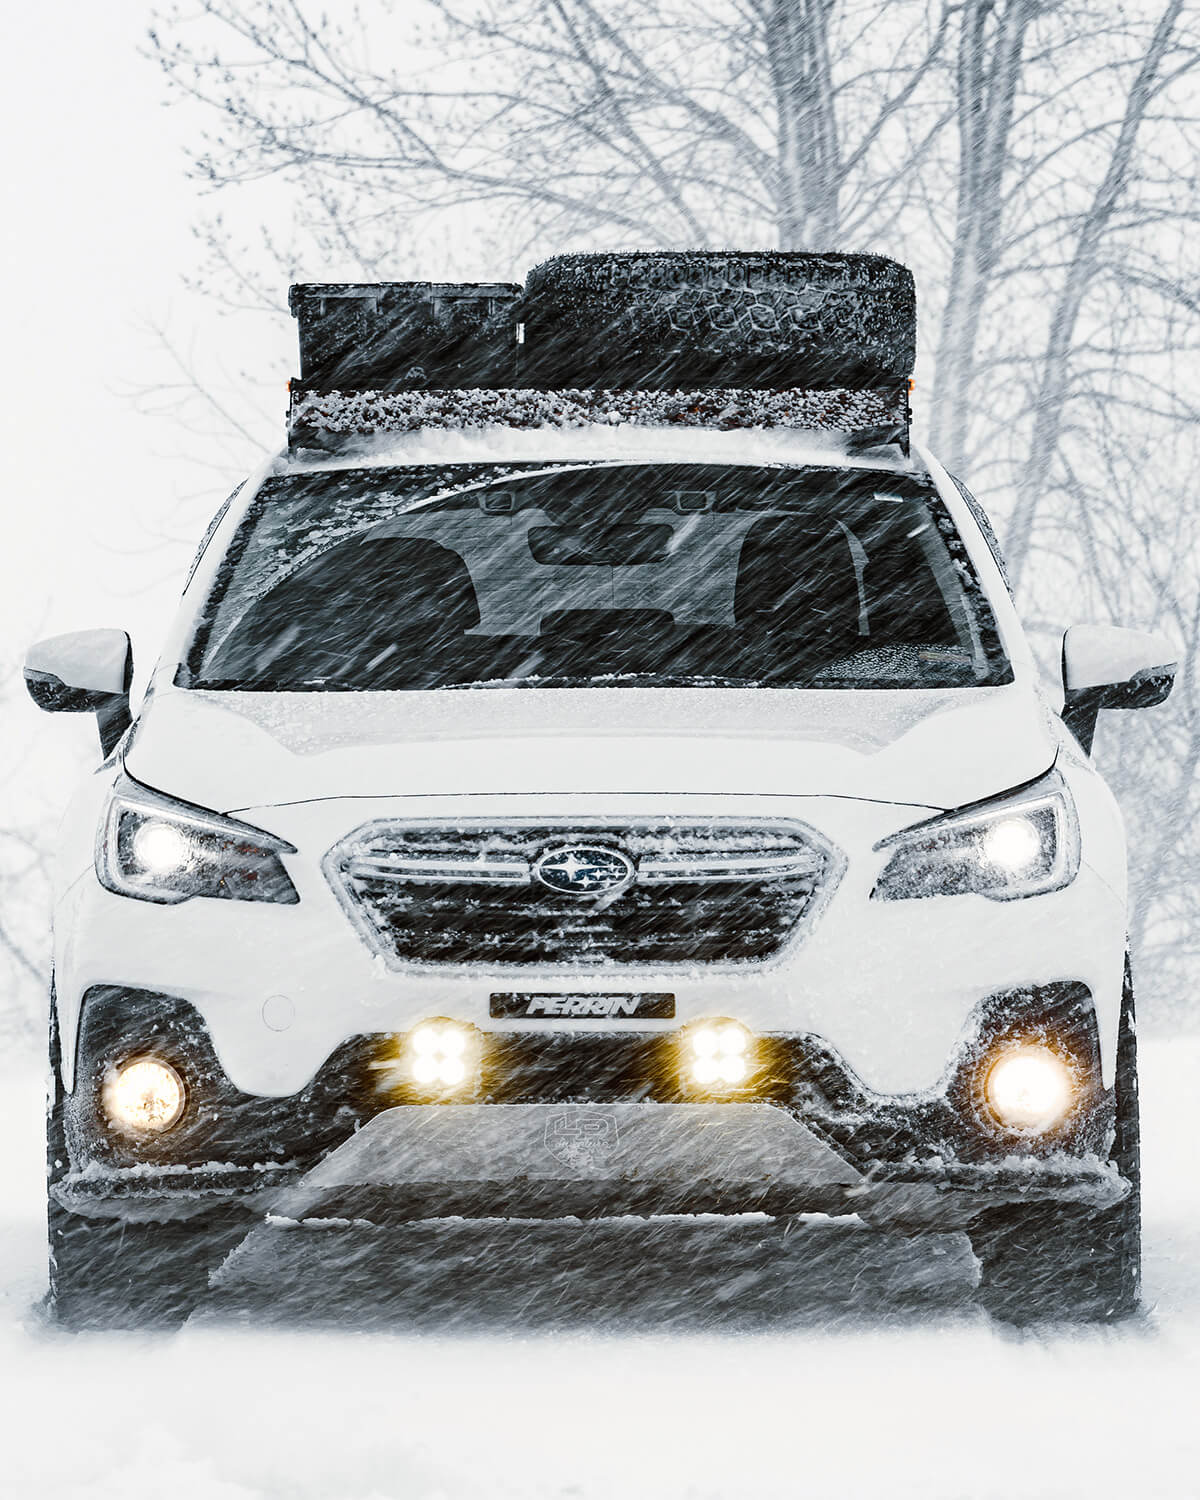 IRIS Weathertight 41 quart roof box (for firewood, hiking/running shoes, or cold food storage during winter)